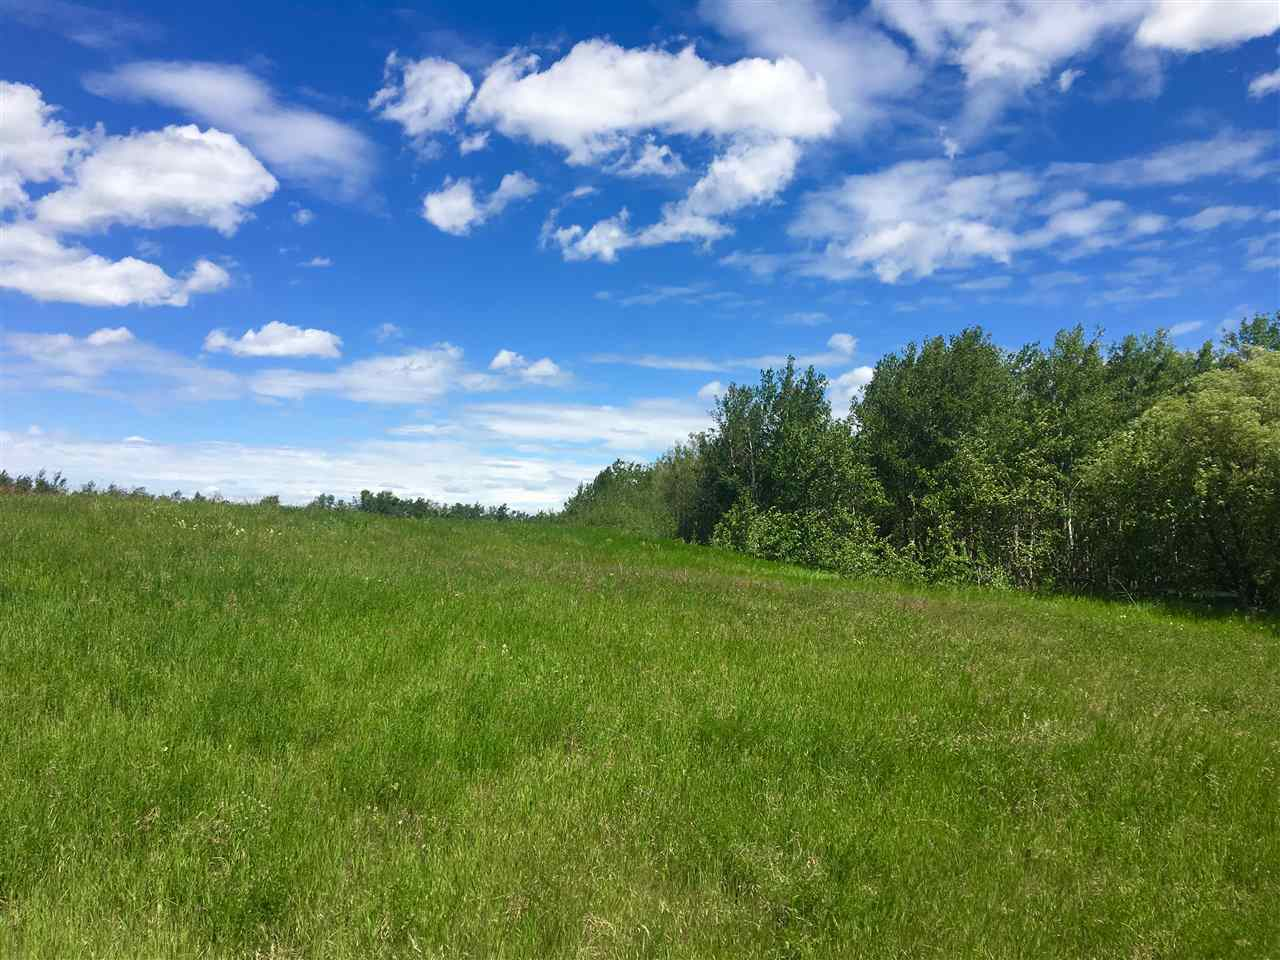 Pavement all the way to this L-Shaped 5.73 ACRE parcel just minutes from Beaumont and on the Beaumont Bus (BLACK GOLD AND STAR CATHOLIC) route! GATEWAY ESTATES is paved and allows HORSES so there is plenty of room on this partially treed parcel to pasture your horses. The approach is in and the power and gas are available to the property. Leduc County 'Country Residential' Standards provide minimum requirements for building size and future development. GST on the purchase price may be applicable.